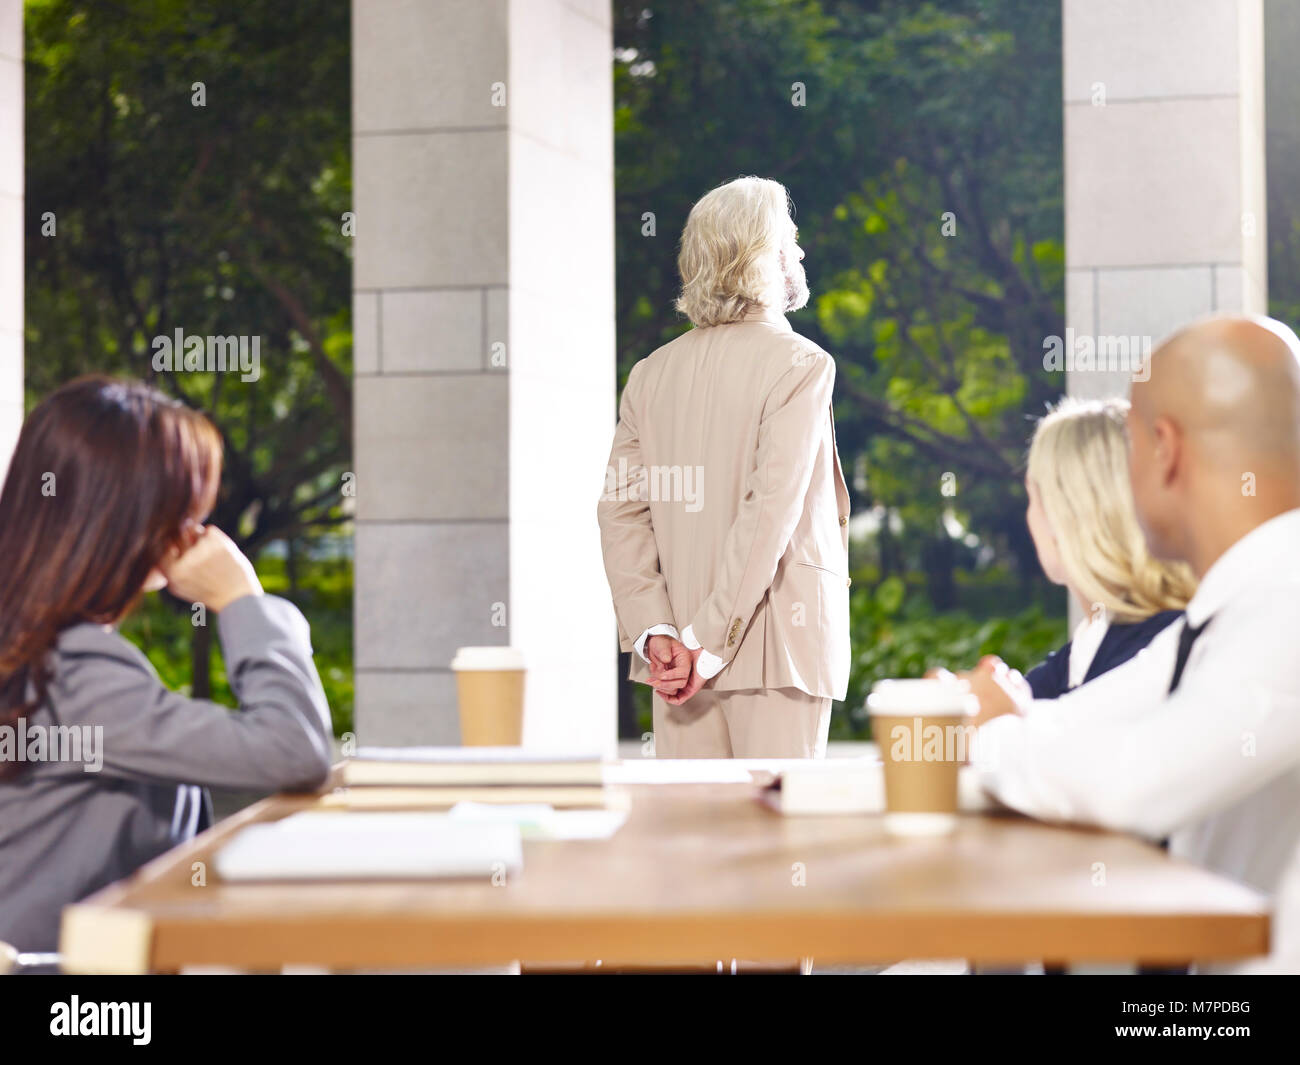 caucasian corporate business leader standing thinking during meeting, hands behind back, rear view. - Stock Image